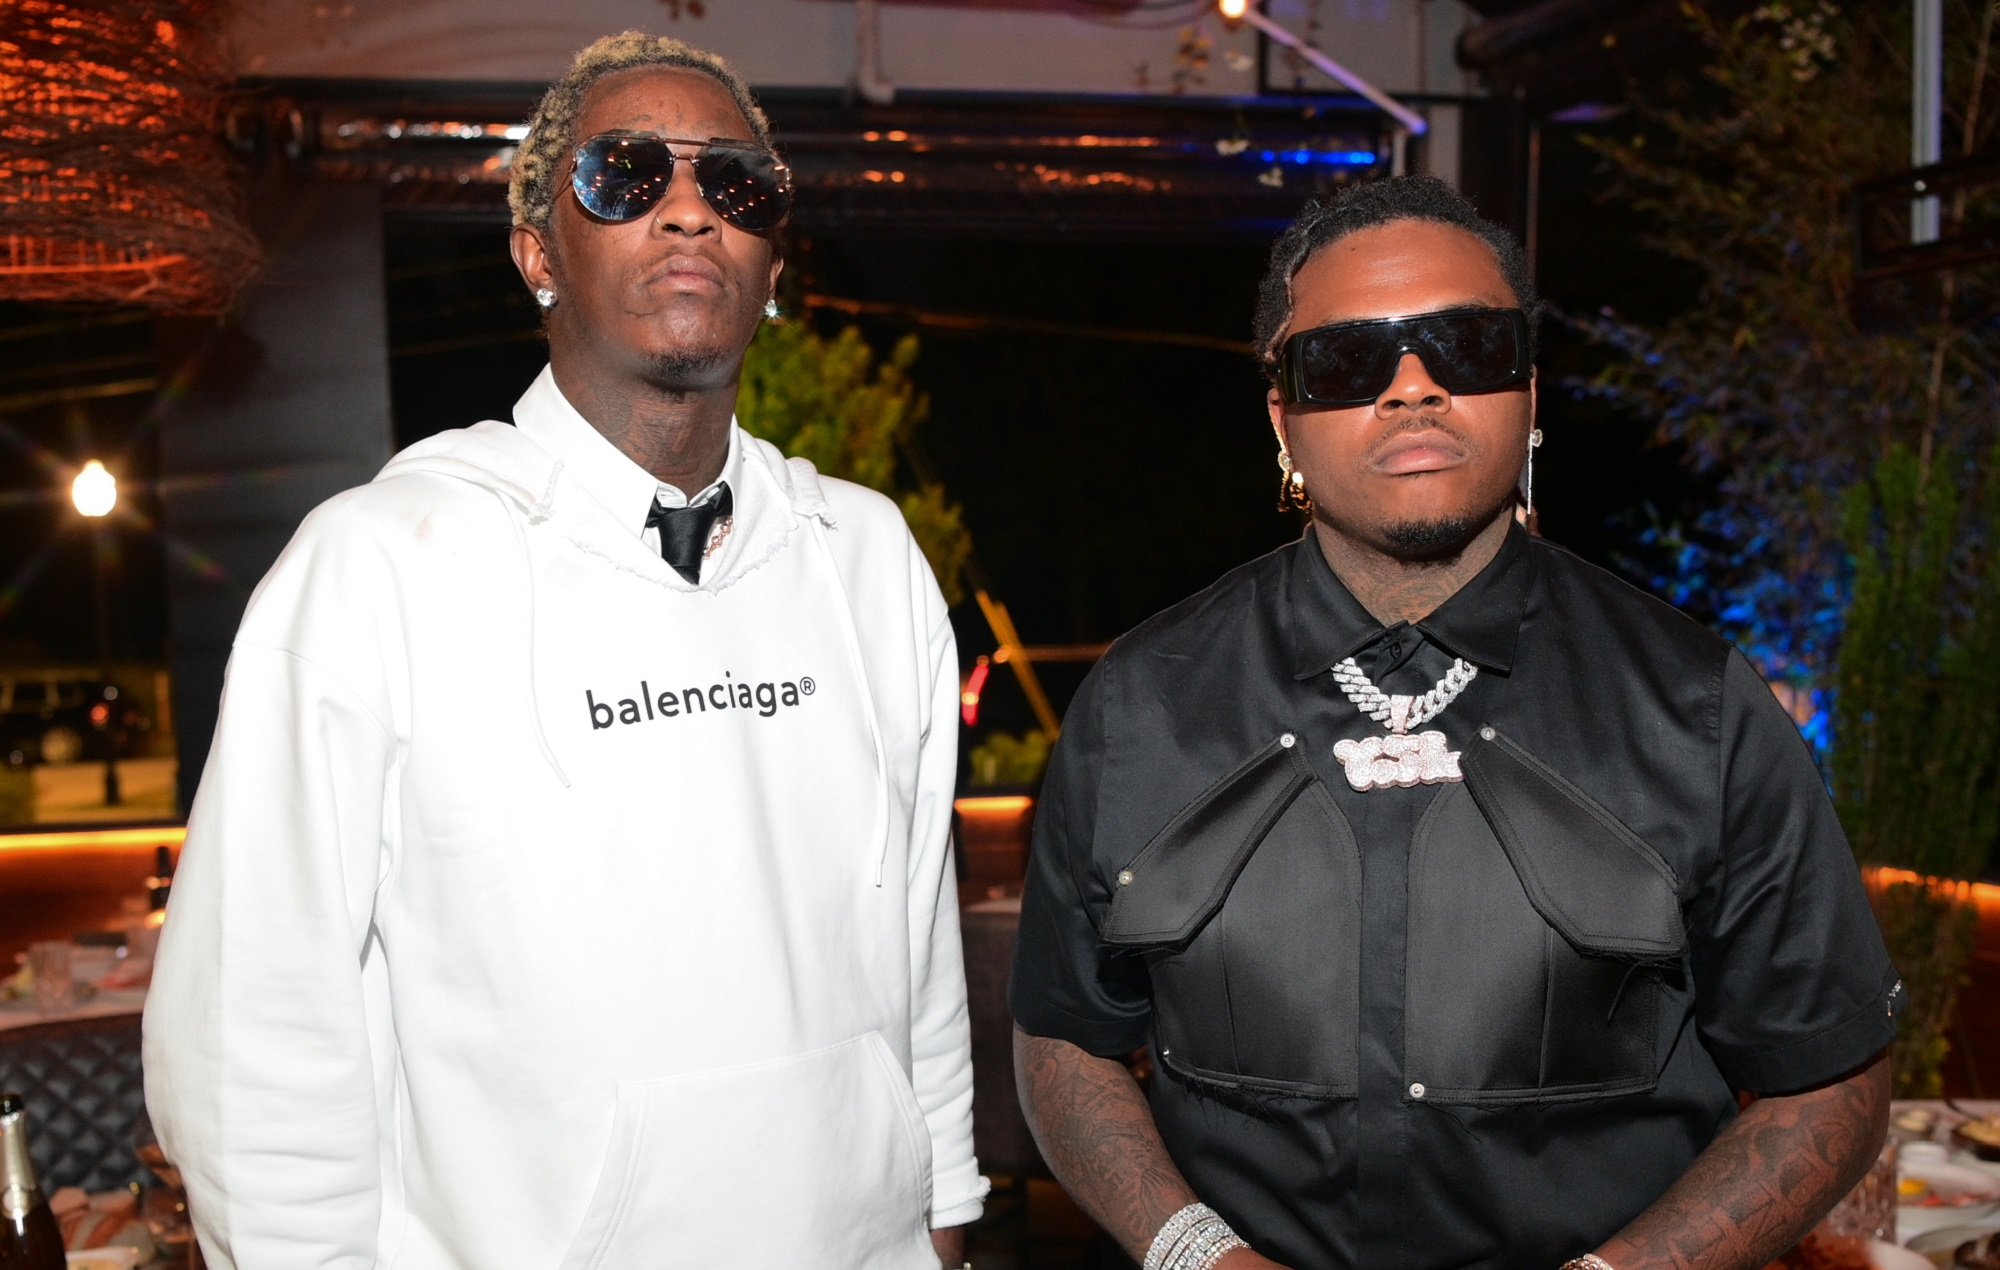 Young Thug and Gunna post bail for 30 people accused of low-level crimes